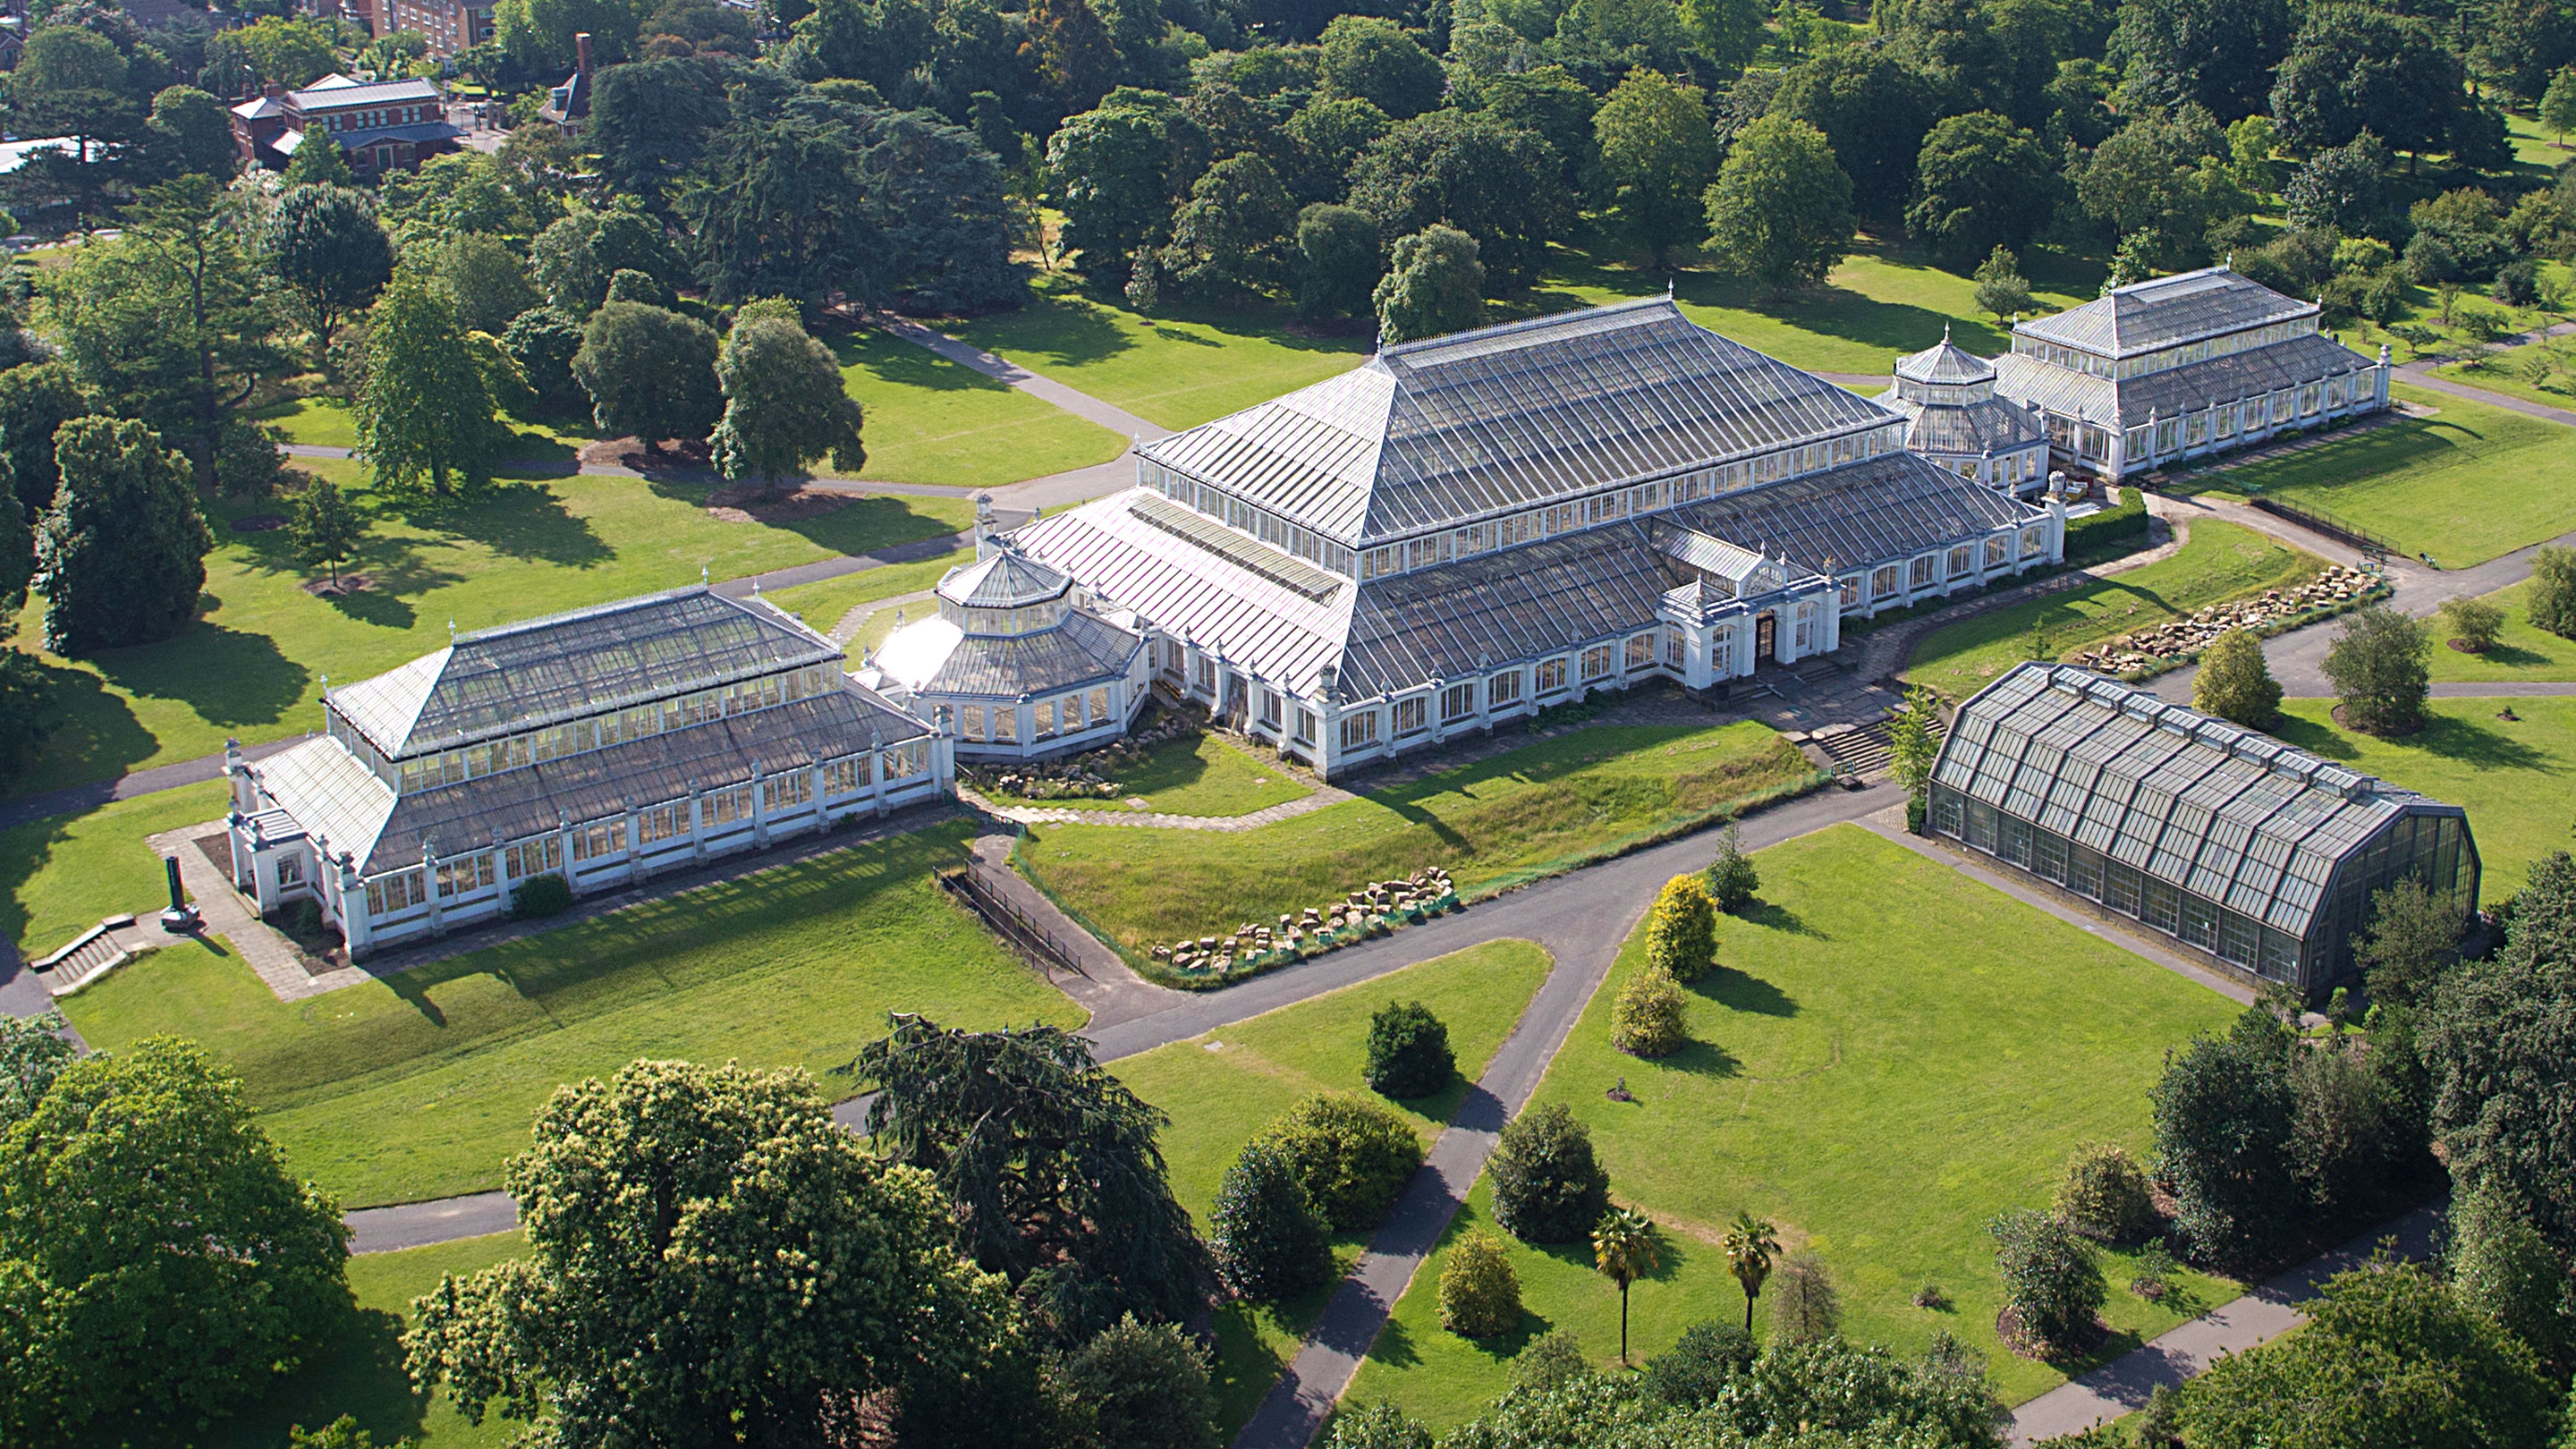 The Temperate House, RBG Kew